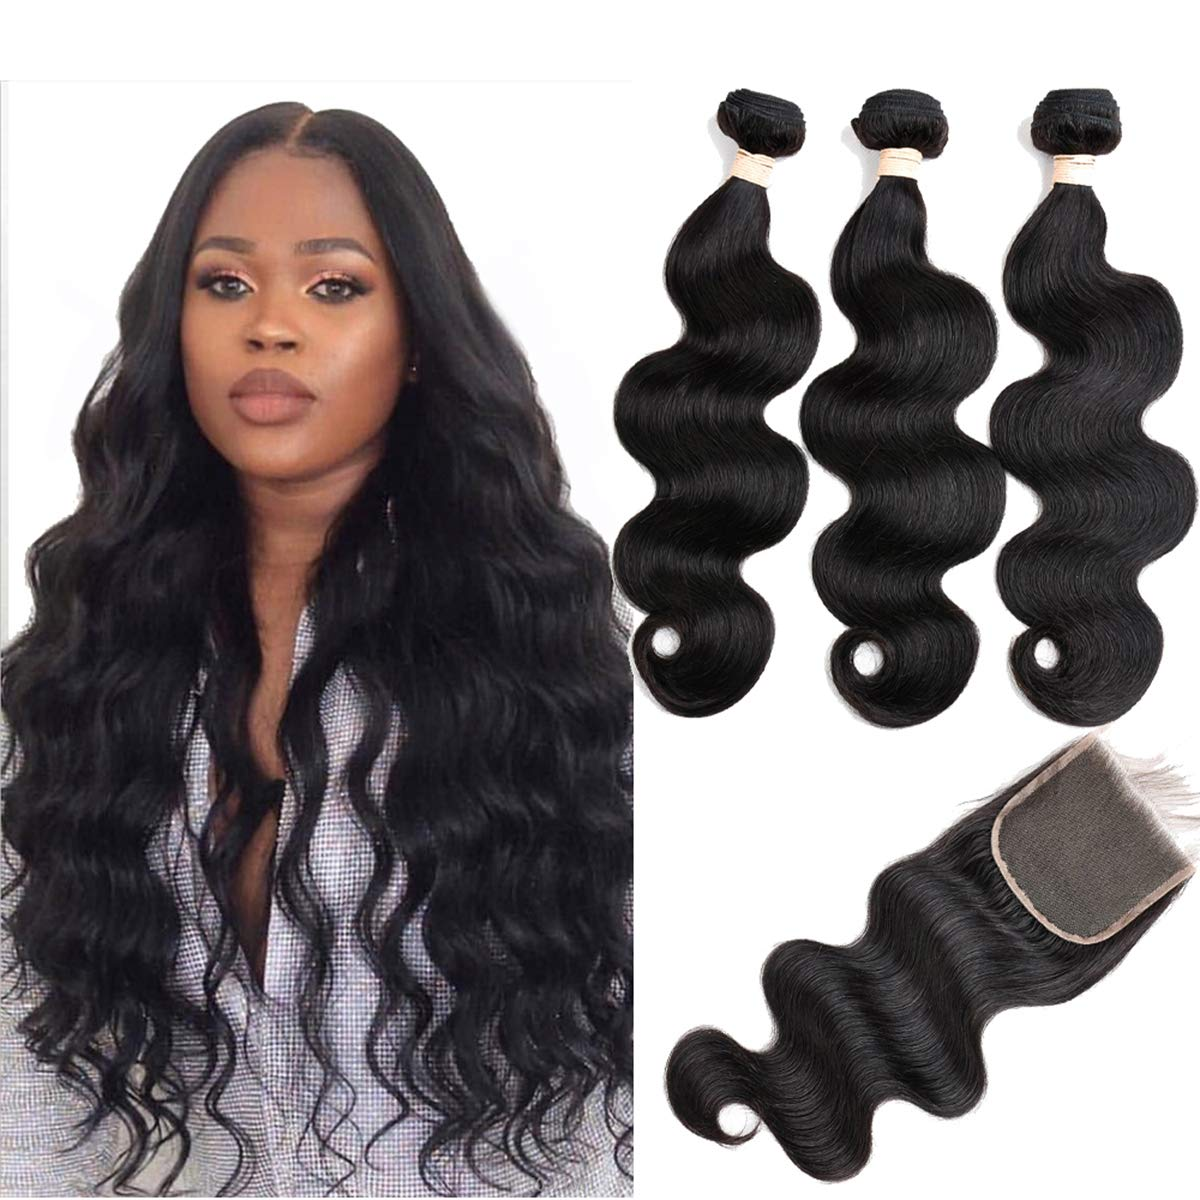 Beauhair Brazilian Body Wave Virgin Hair Bundles with Lace Closure(14 16 18 with14closure) Human Hair Unprocessed Body Wave Hair with Closure 4X4 Lace Free Part Natural Black Hair by Beauhair